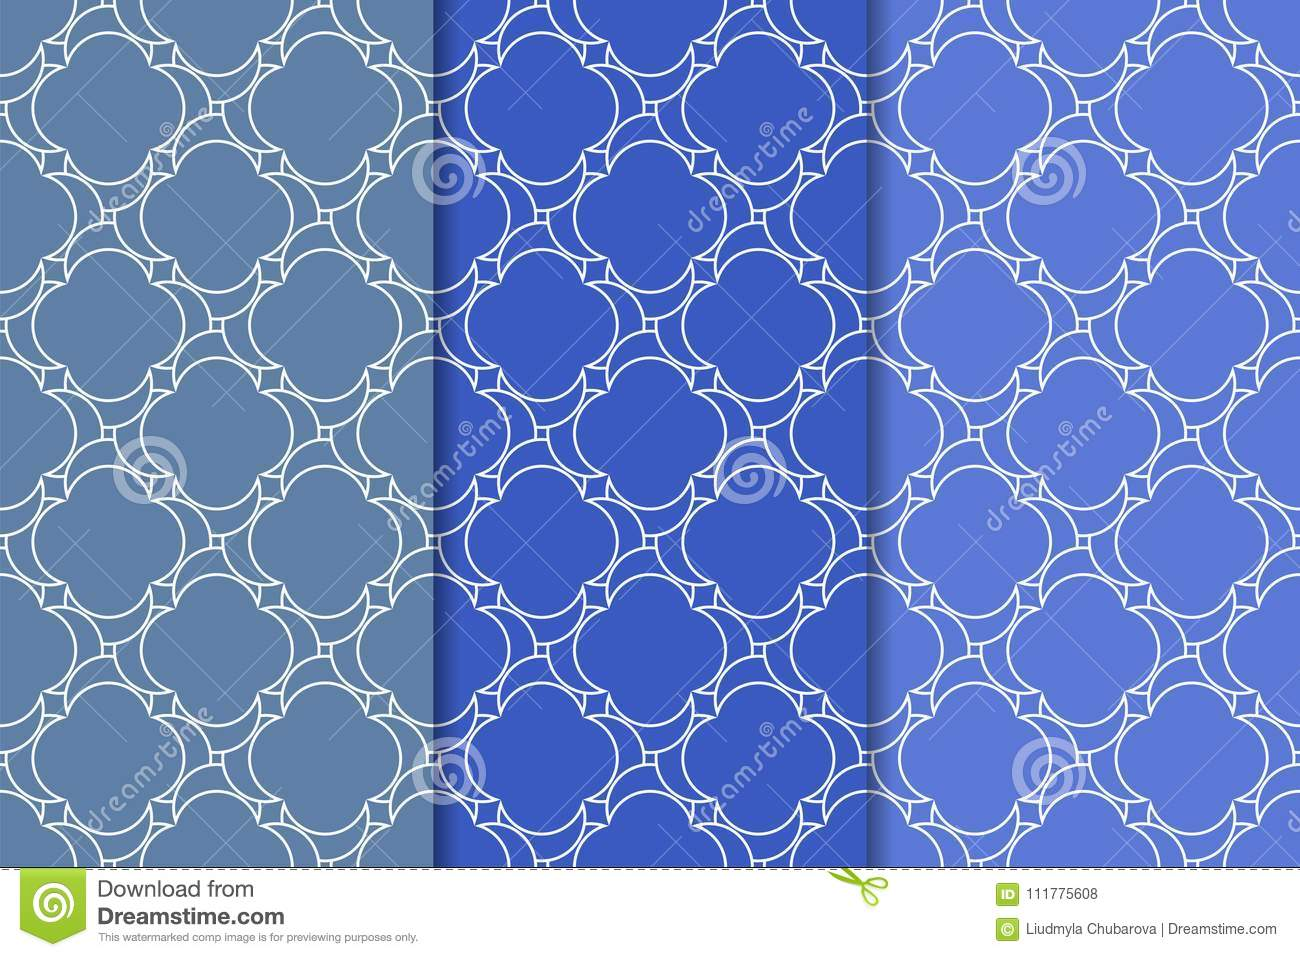 Blue geometric ornaments. Set of seamless patterns